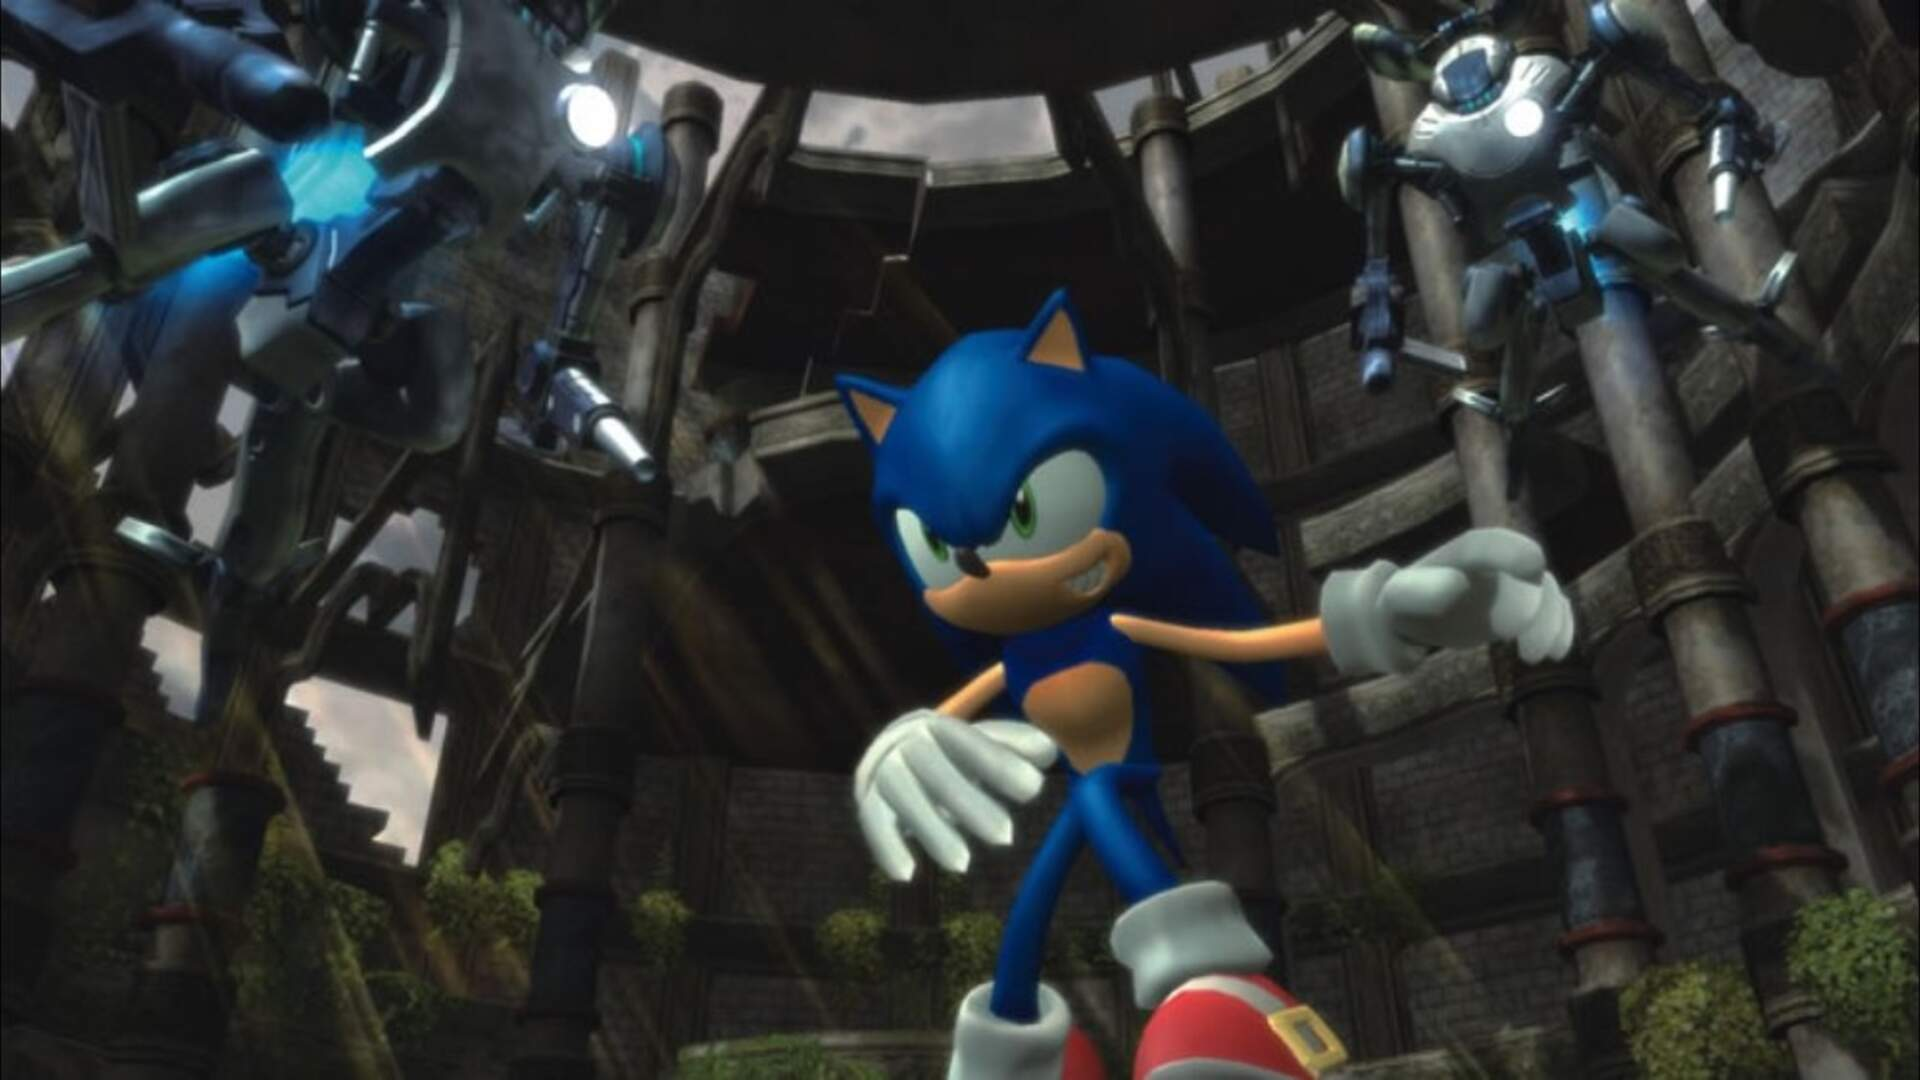 The Sonic Game Fans Love to Hate is Being Remade in Unity, and You Can Play the Demo Now